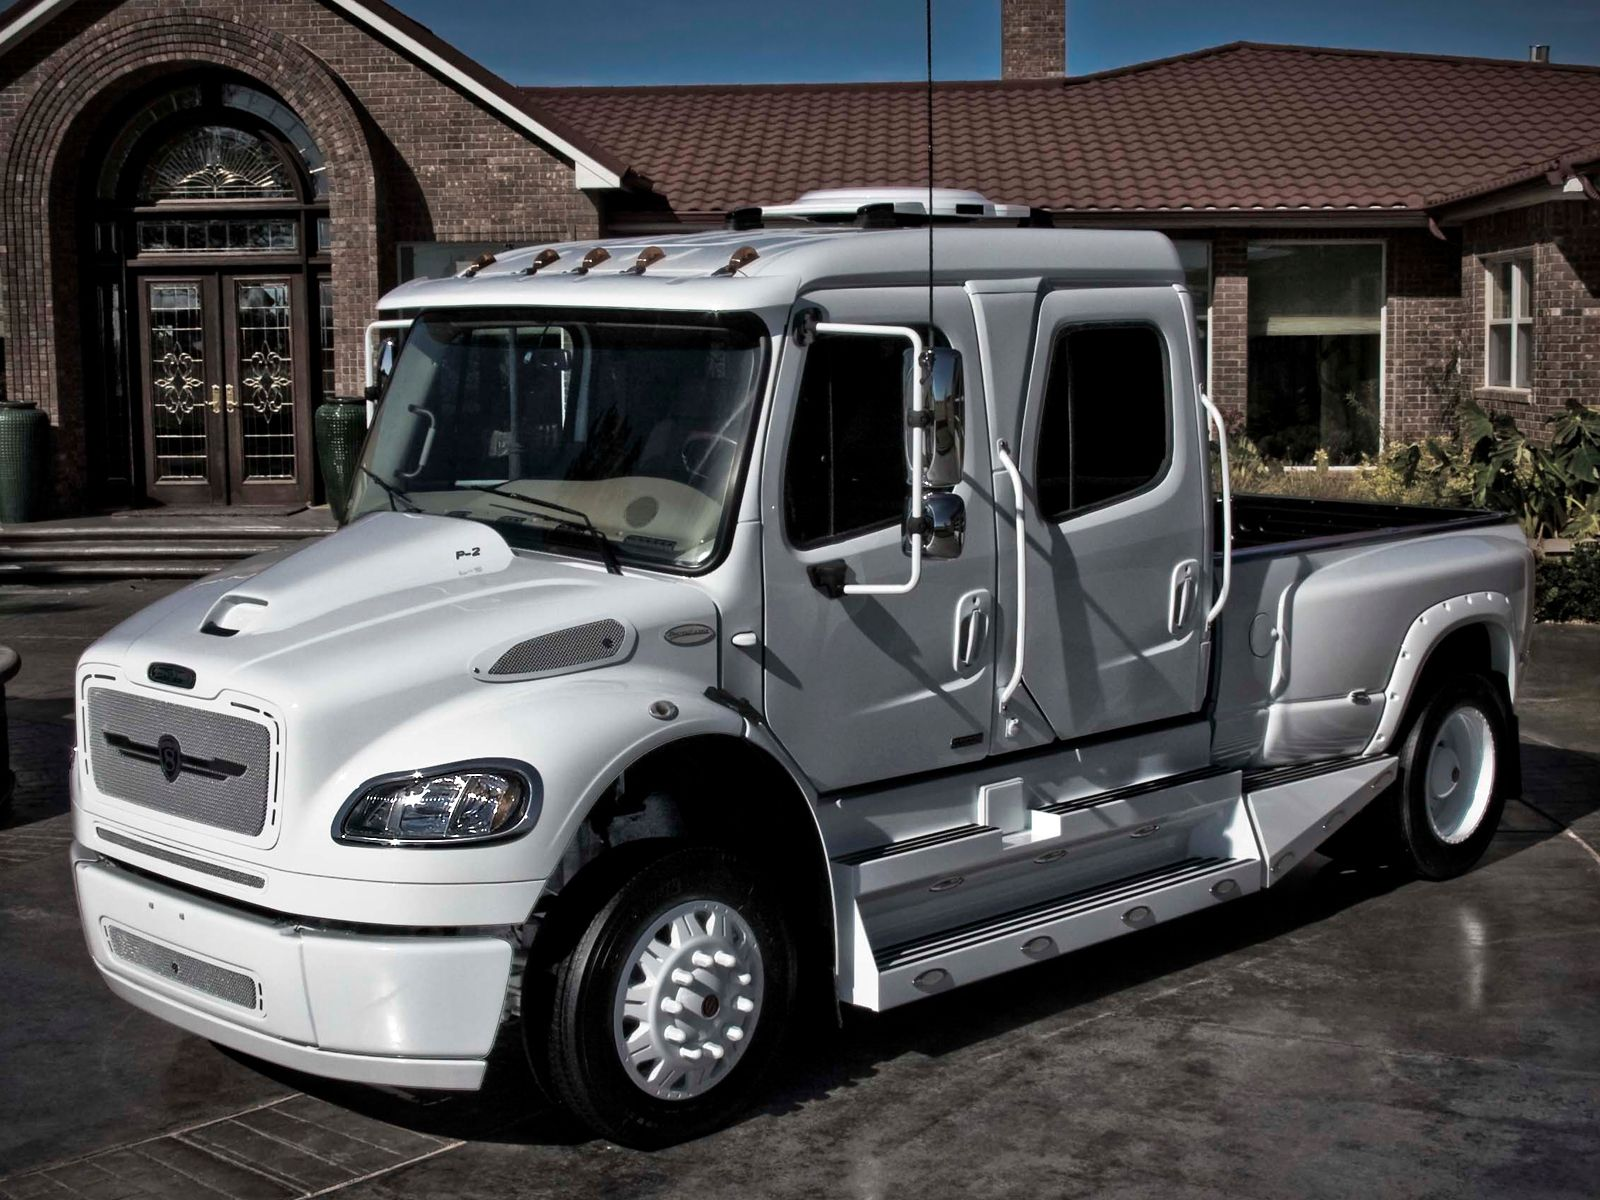 strut freightliner business class m2 sportchassis grille collection  [ 1600 x 1200 Pixel ]